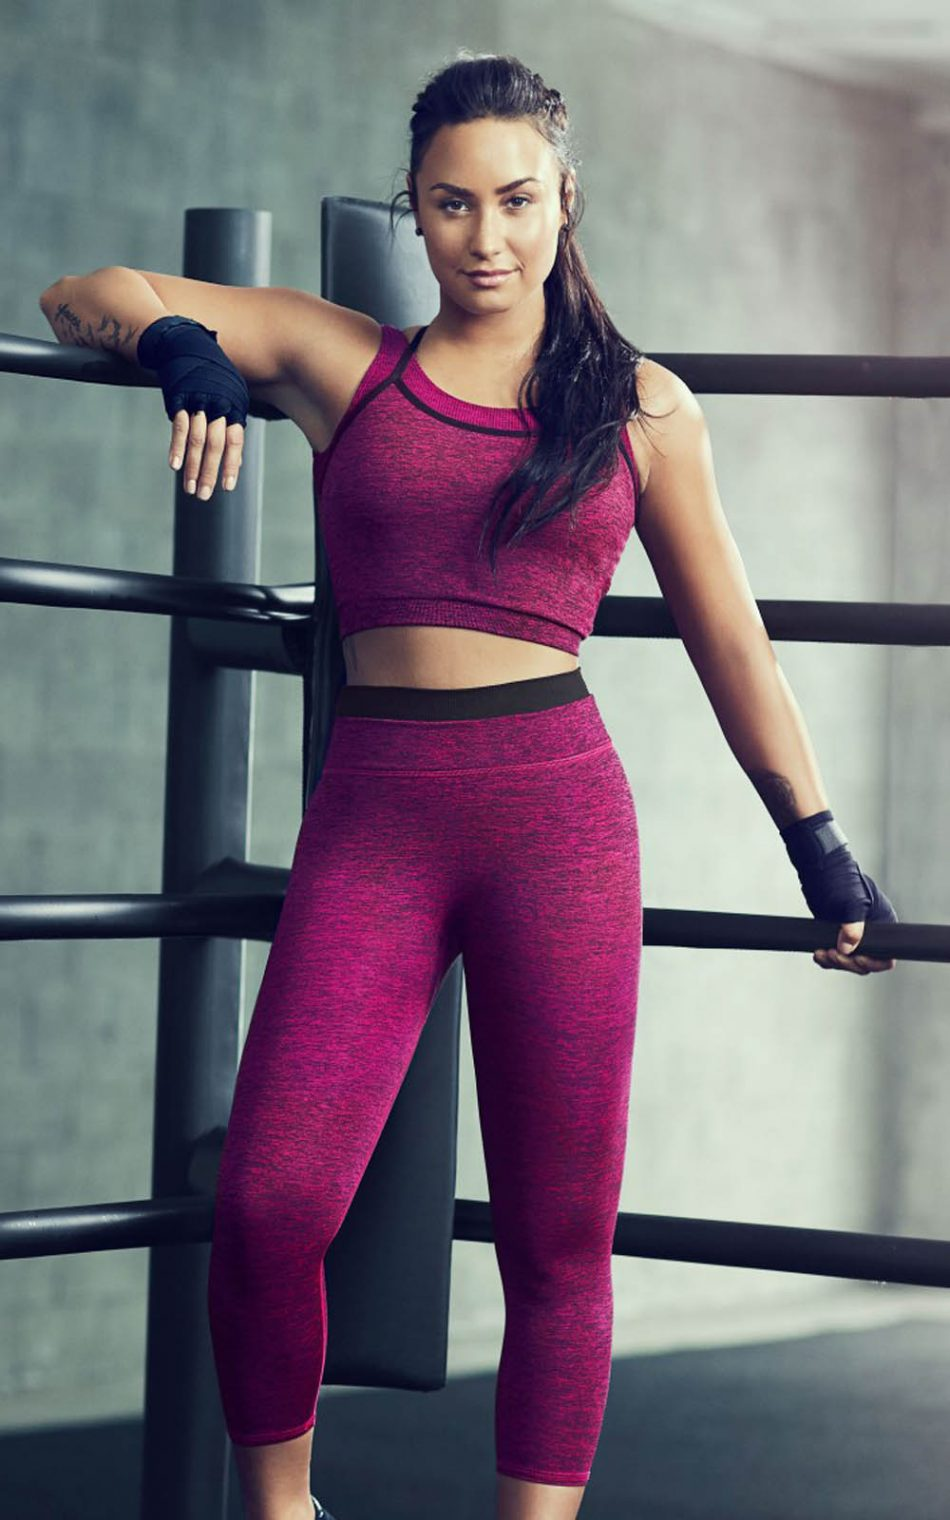 demi lovato fabletics workout download free 100 pure hd. Black Bedroom Furniture Sets. Home Design Ideas